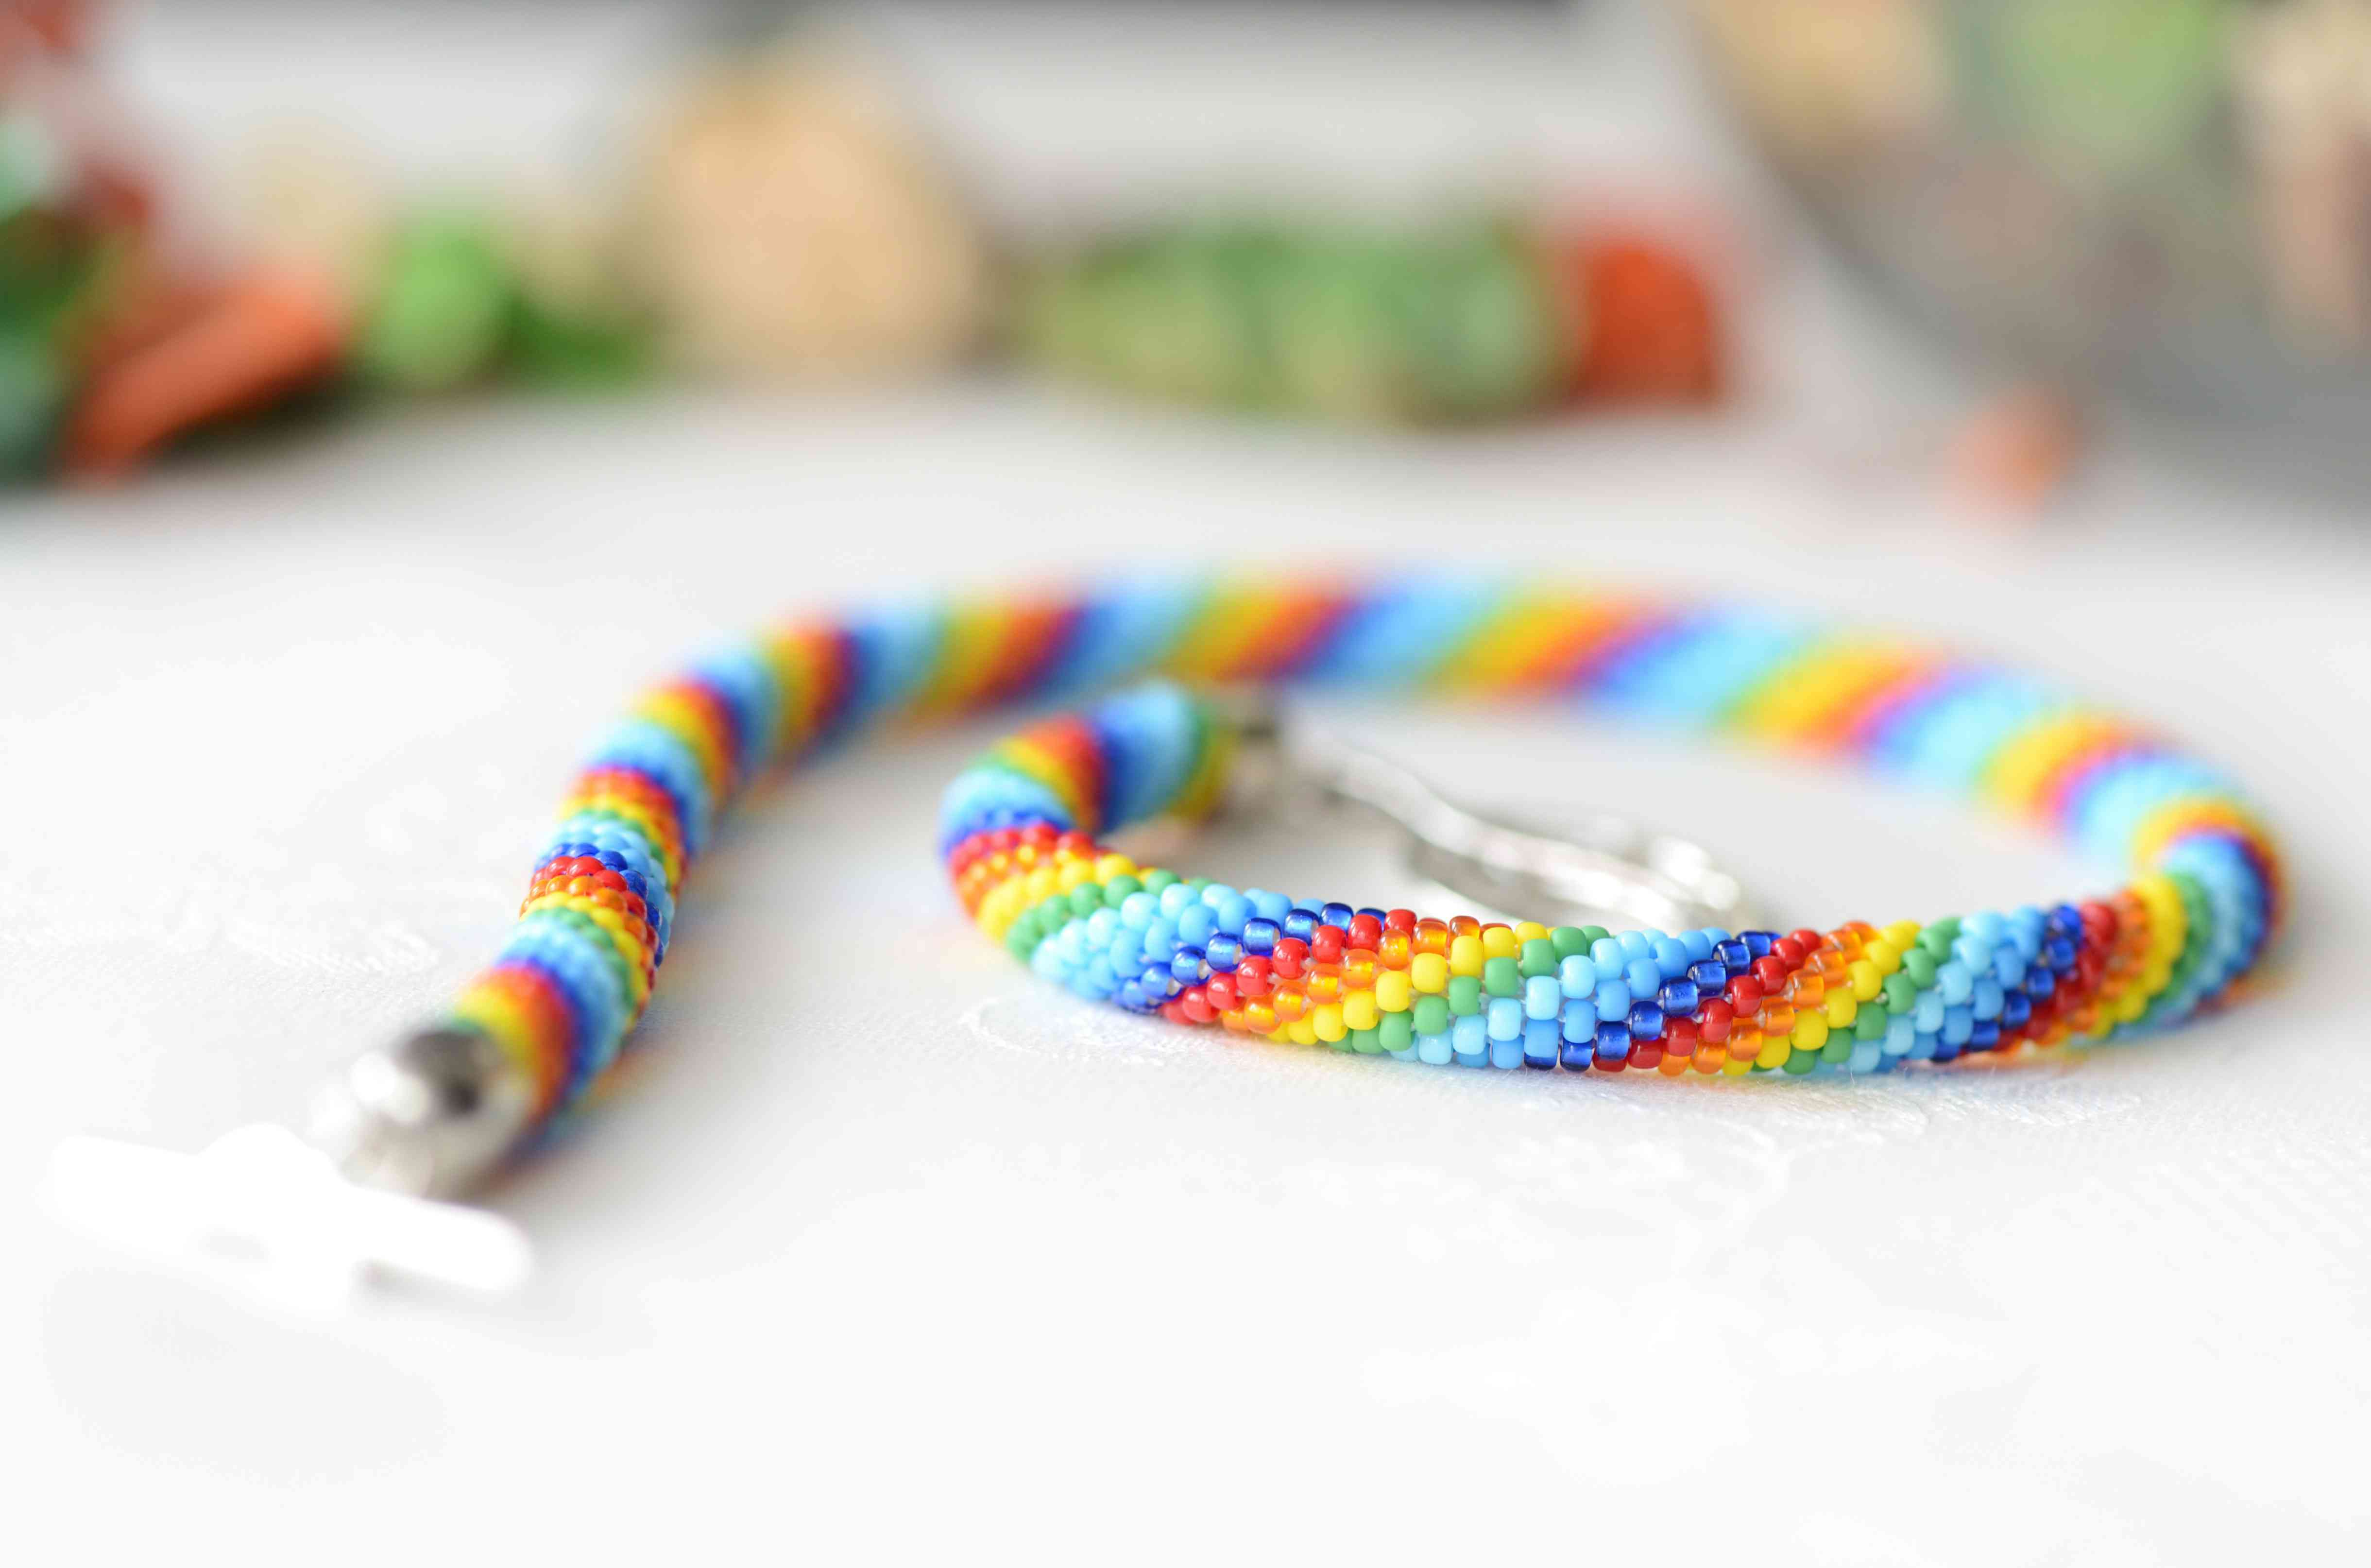 Rainbow beaded necklace on a textile background close up